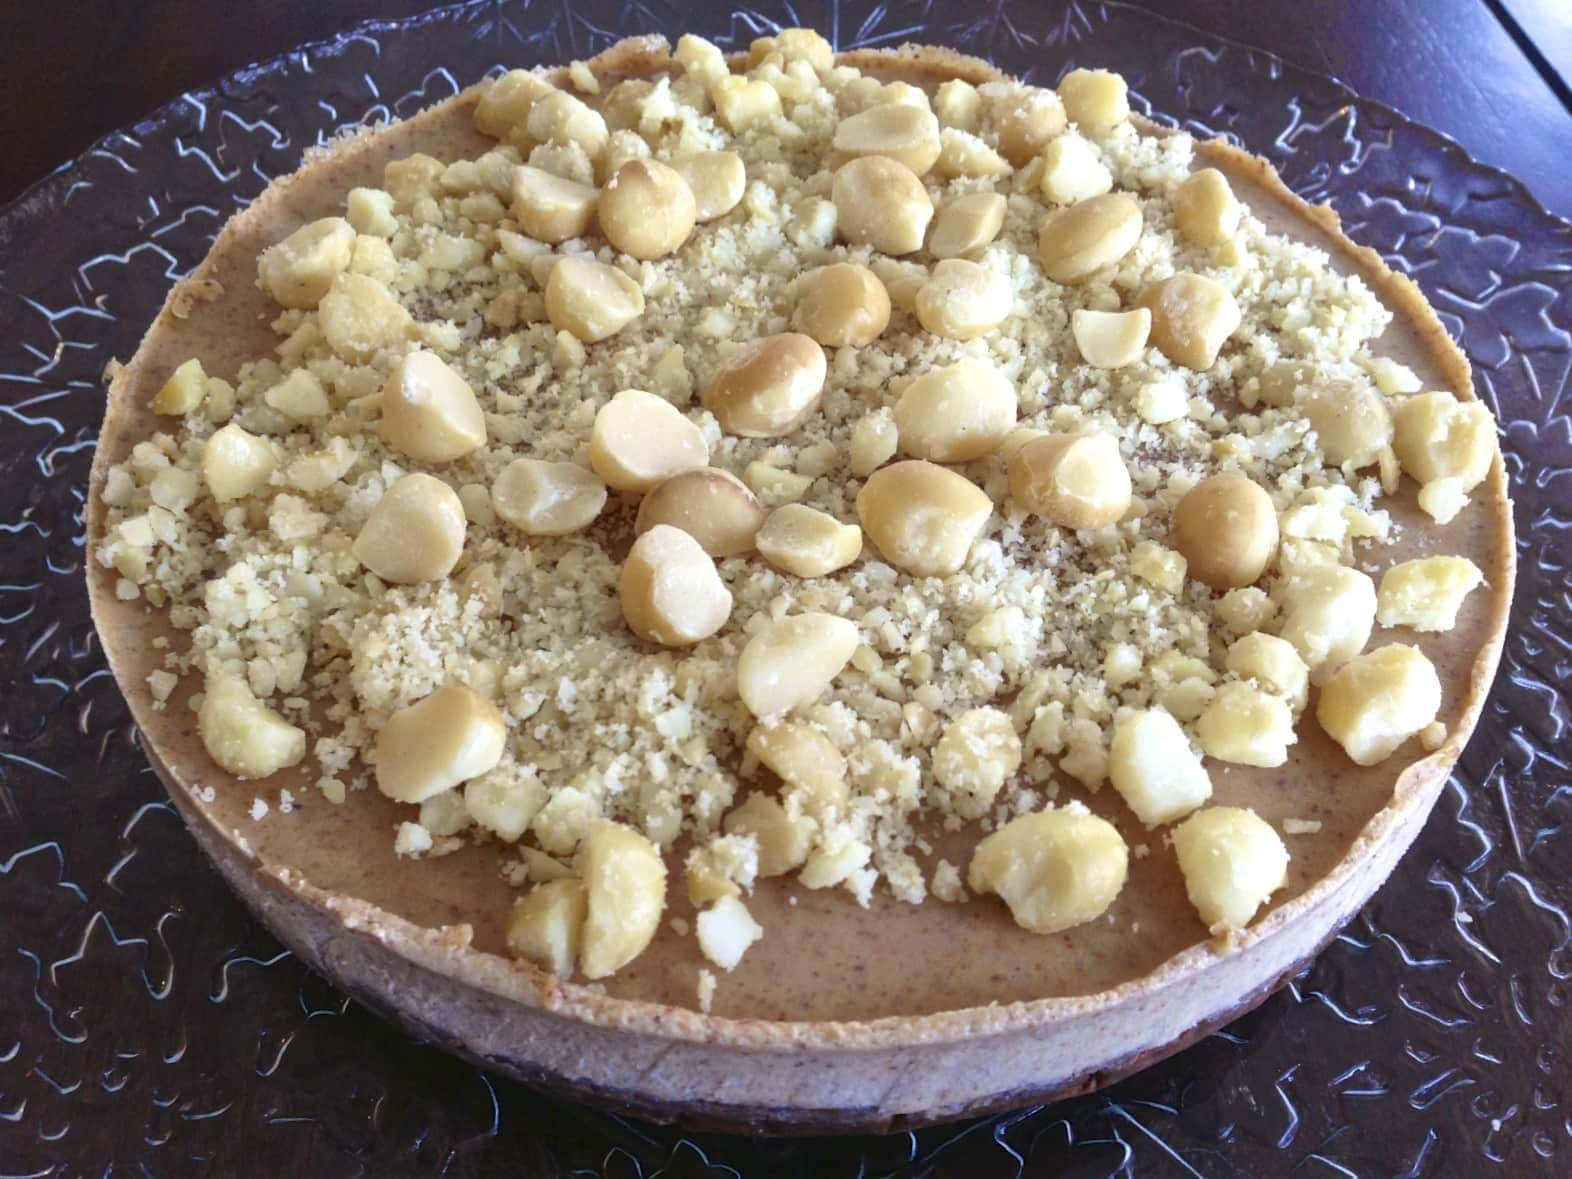 No-Bake Macadamia Nut Pie - Living Healthy With Chocolate